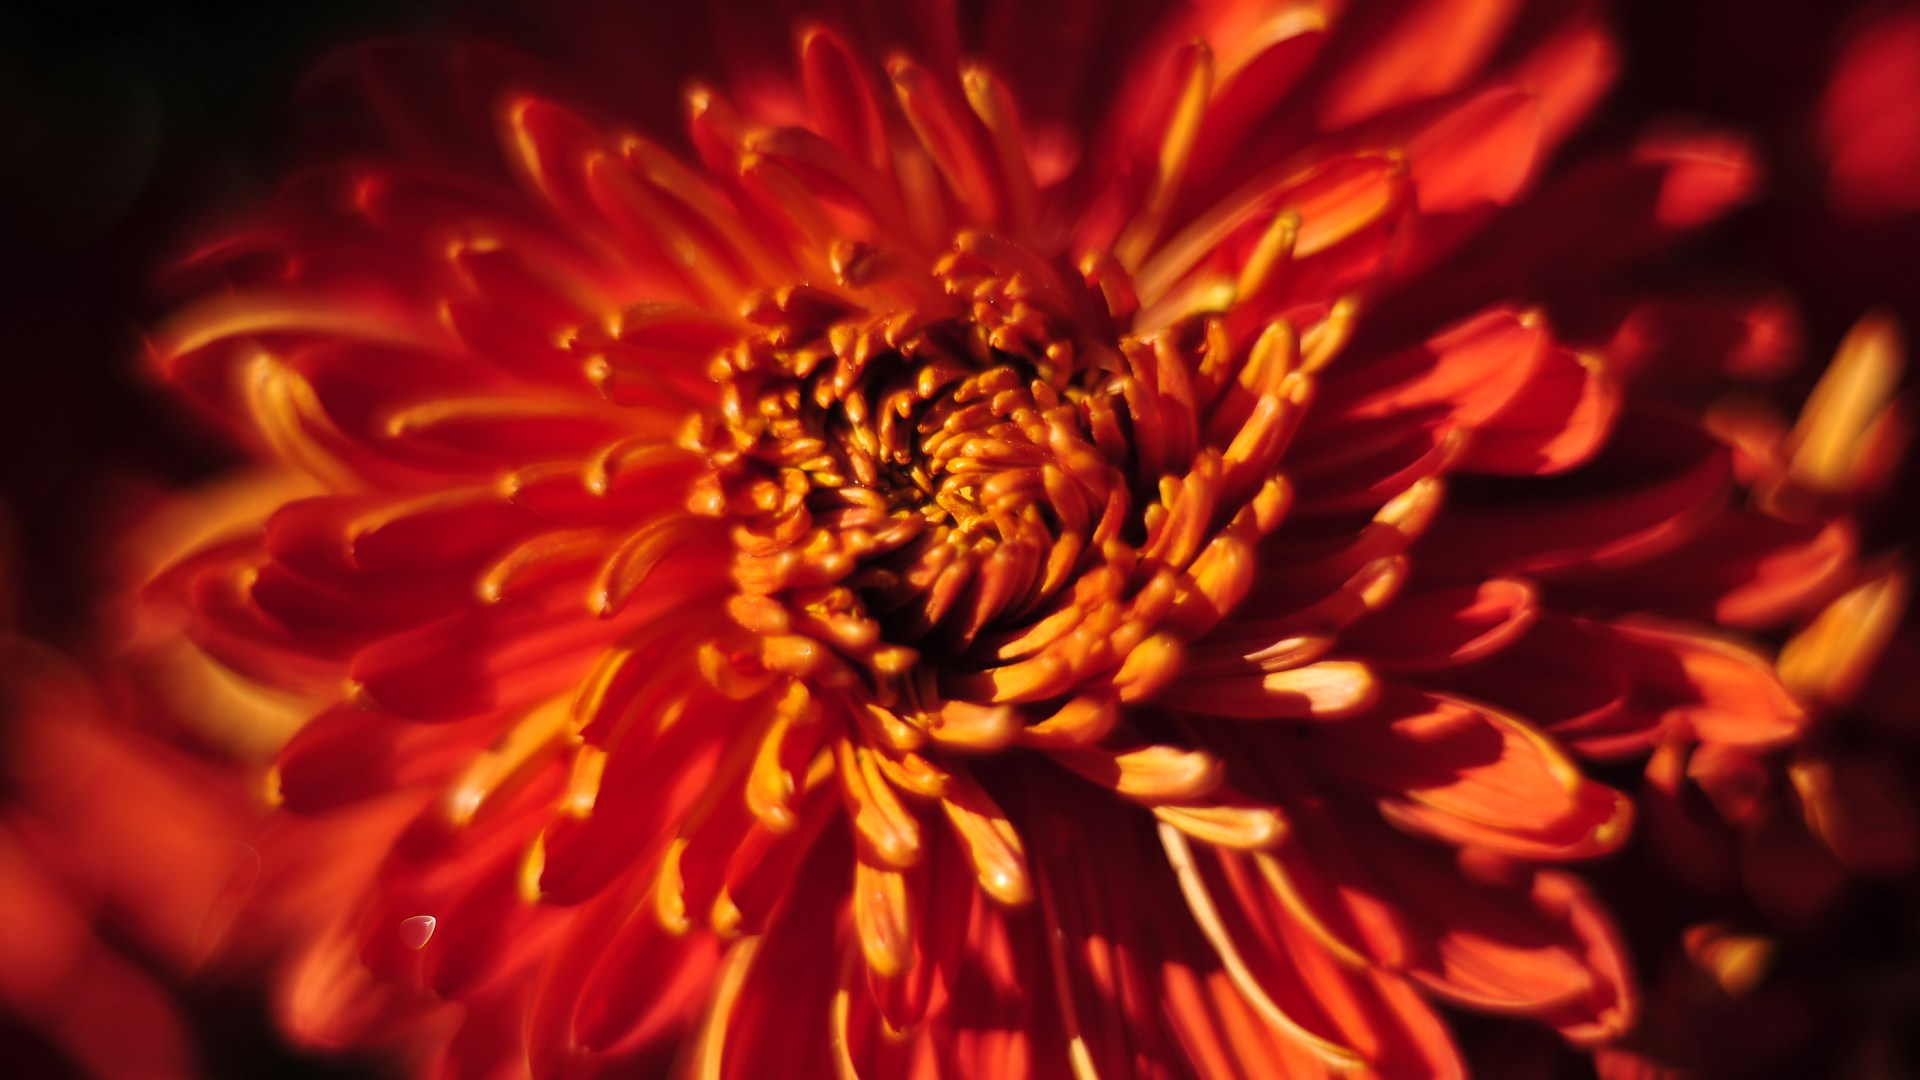 Pictures flowers wallpapers desktop chrysanthemum wallpaper beautiful image Flower HD Wallpaper 1920x1080 px